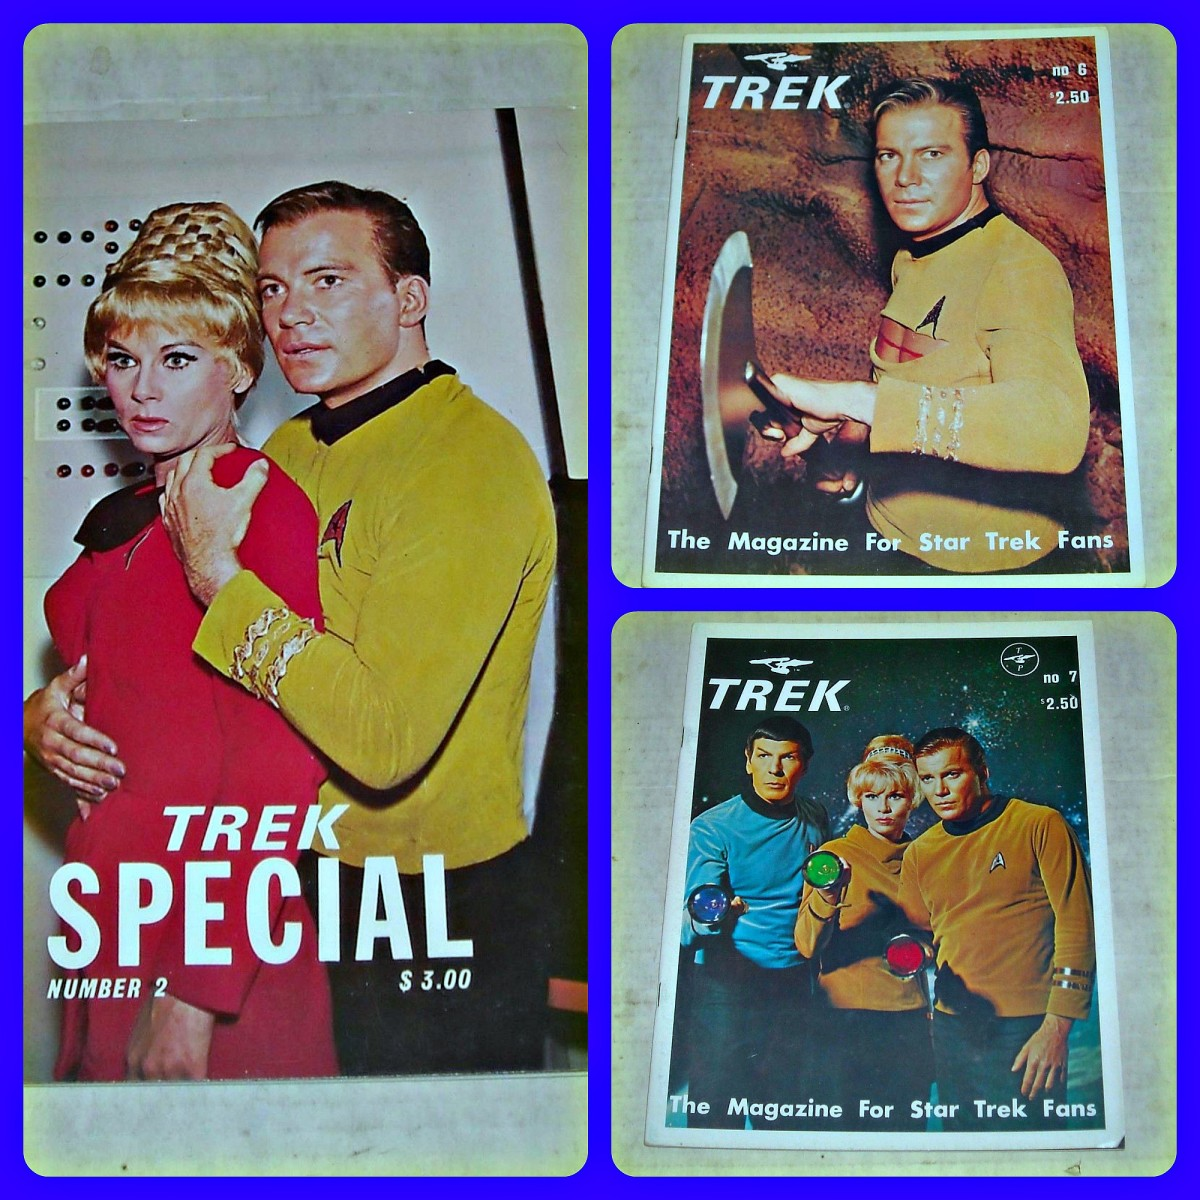 Here are three great issues ... TREK The MAGAZINE for STAR TREK FANS SPECIAL #2, published in November 1978, TREK The MAGAZINE for STAR TREK FANS # 6, published in November 1976, and TREK The MAGAZINE for STAR TREK FANS # 7, published in Feb 1977.